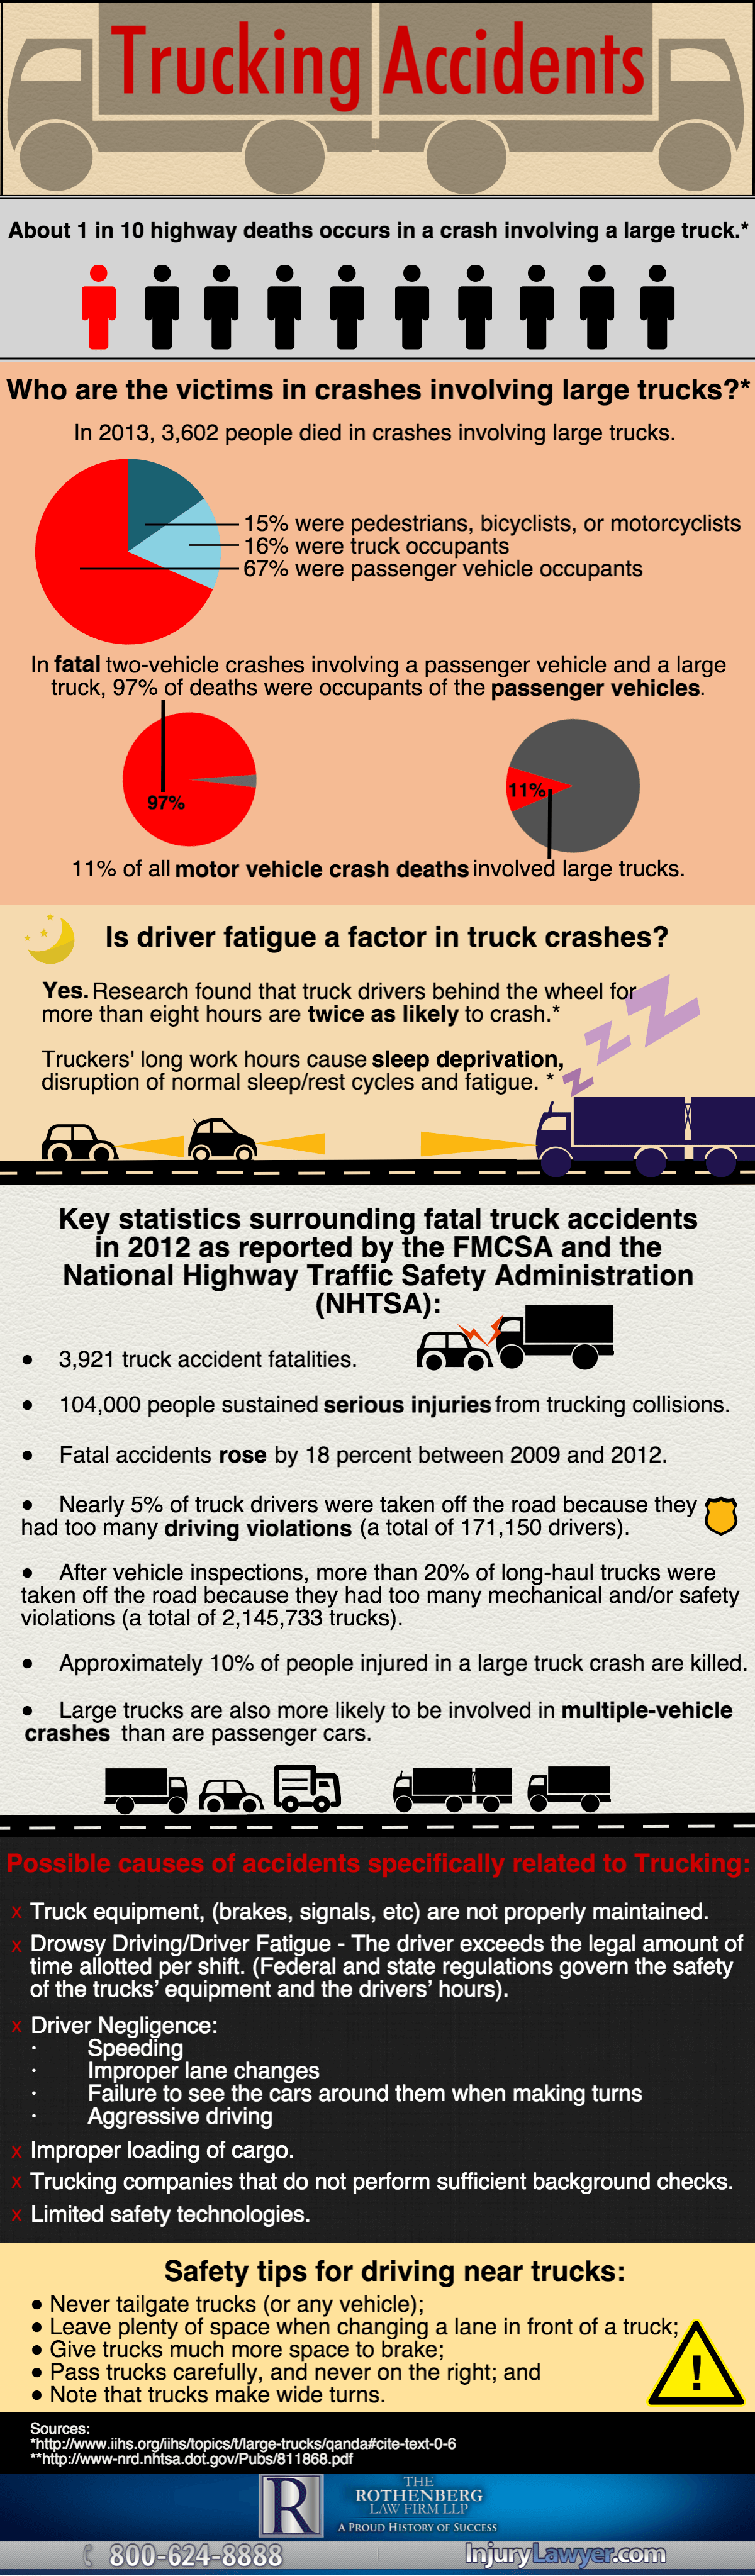 Trucking Accidents thumbnail